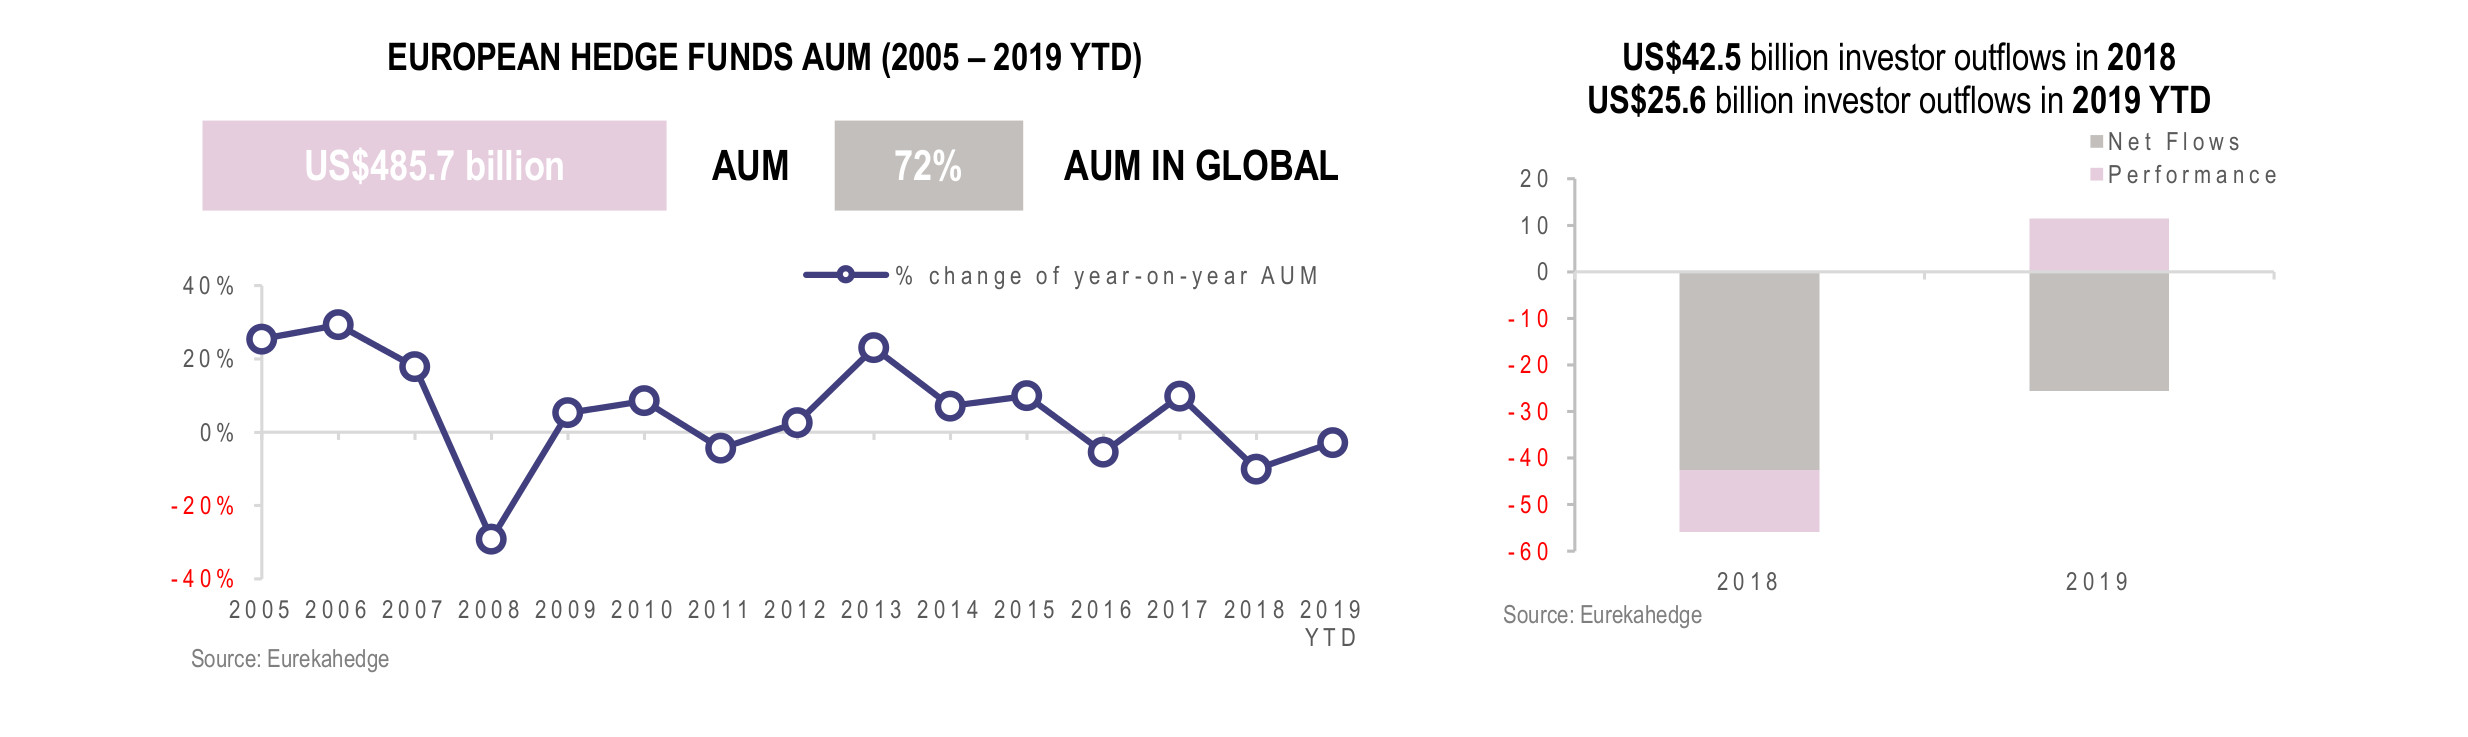 European Hedge Funds Infographic July 2019 - AUM